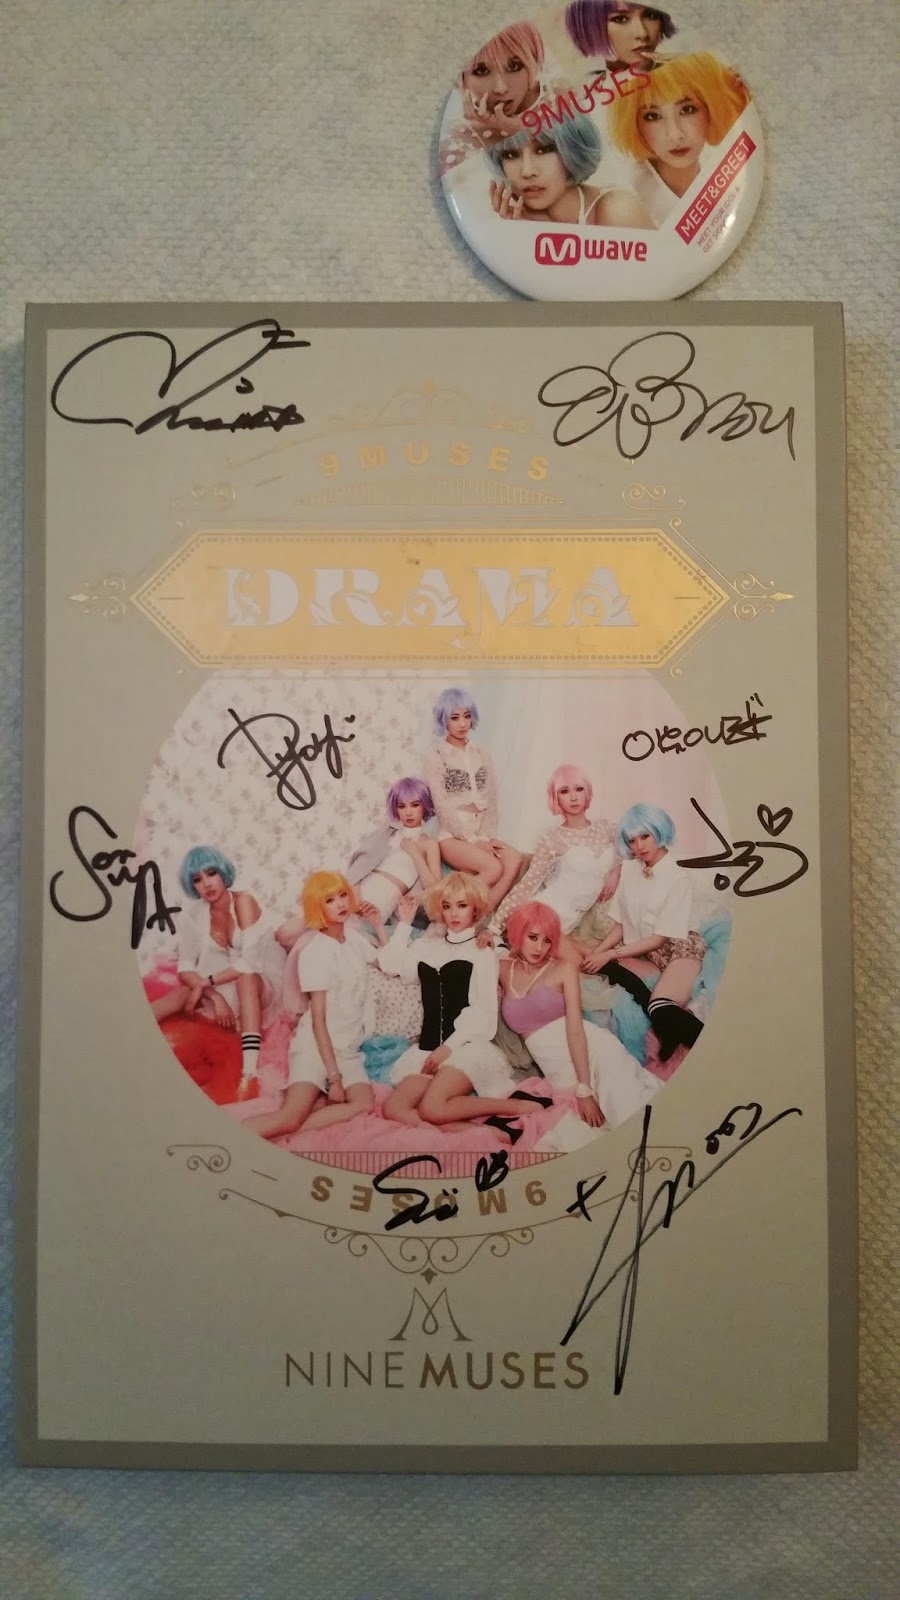 Signed Nine Muses Drama Cd From Mwave Meet Greet Ticket One Way